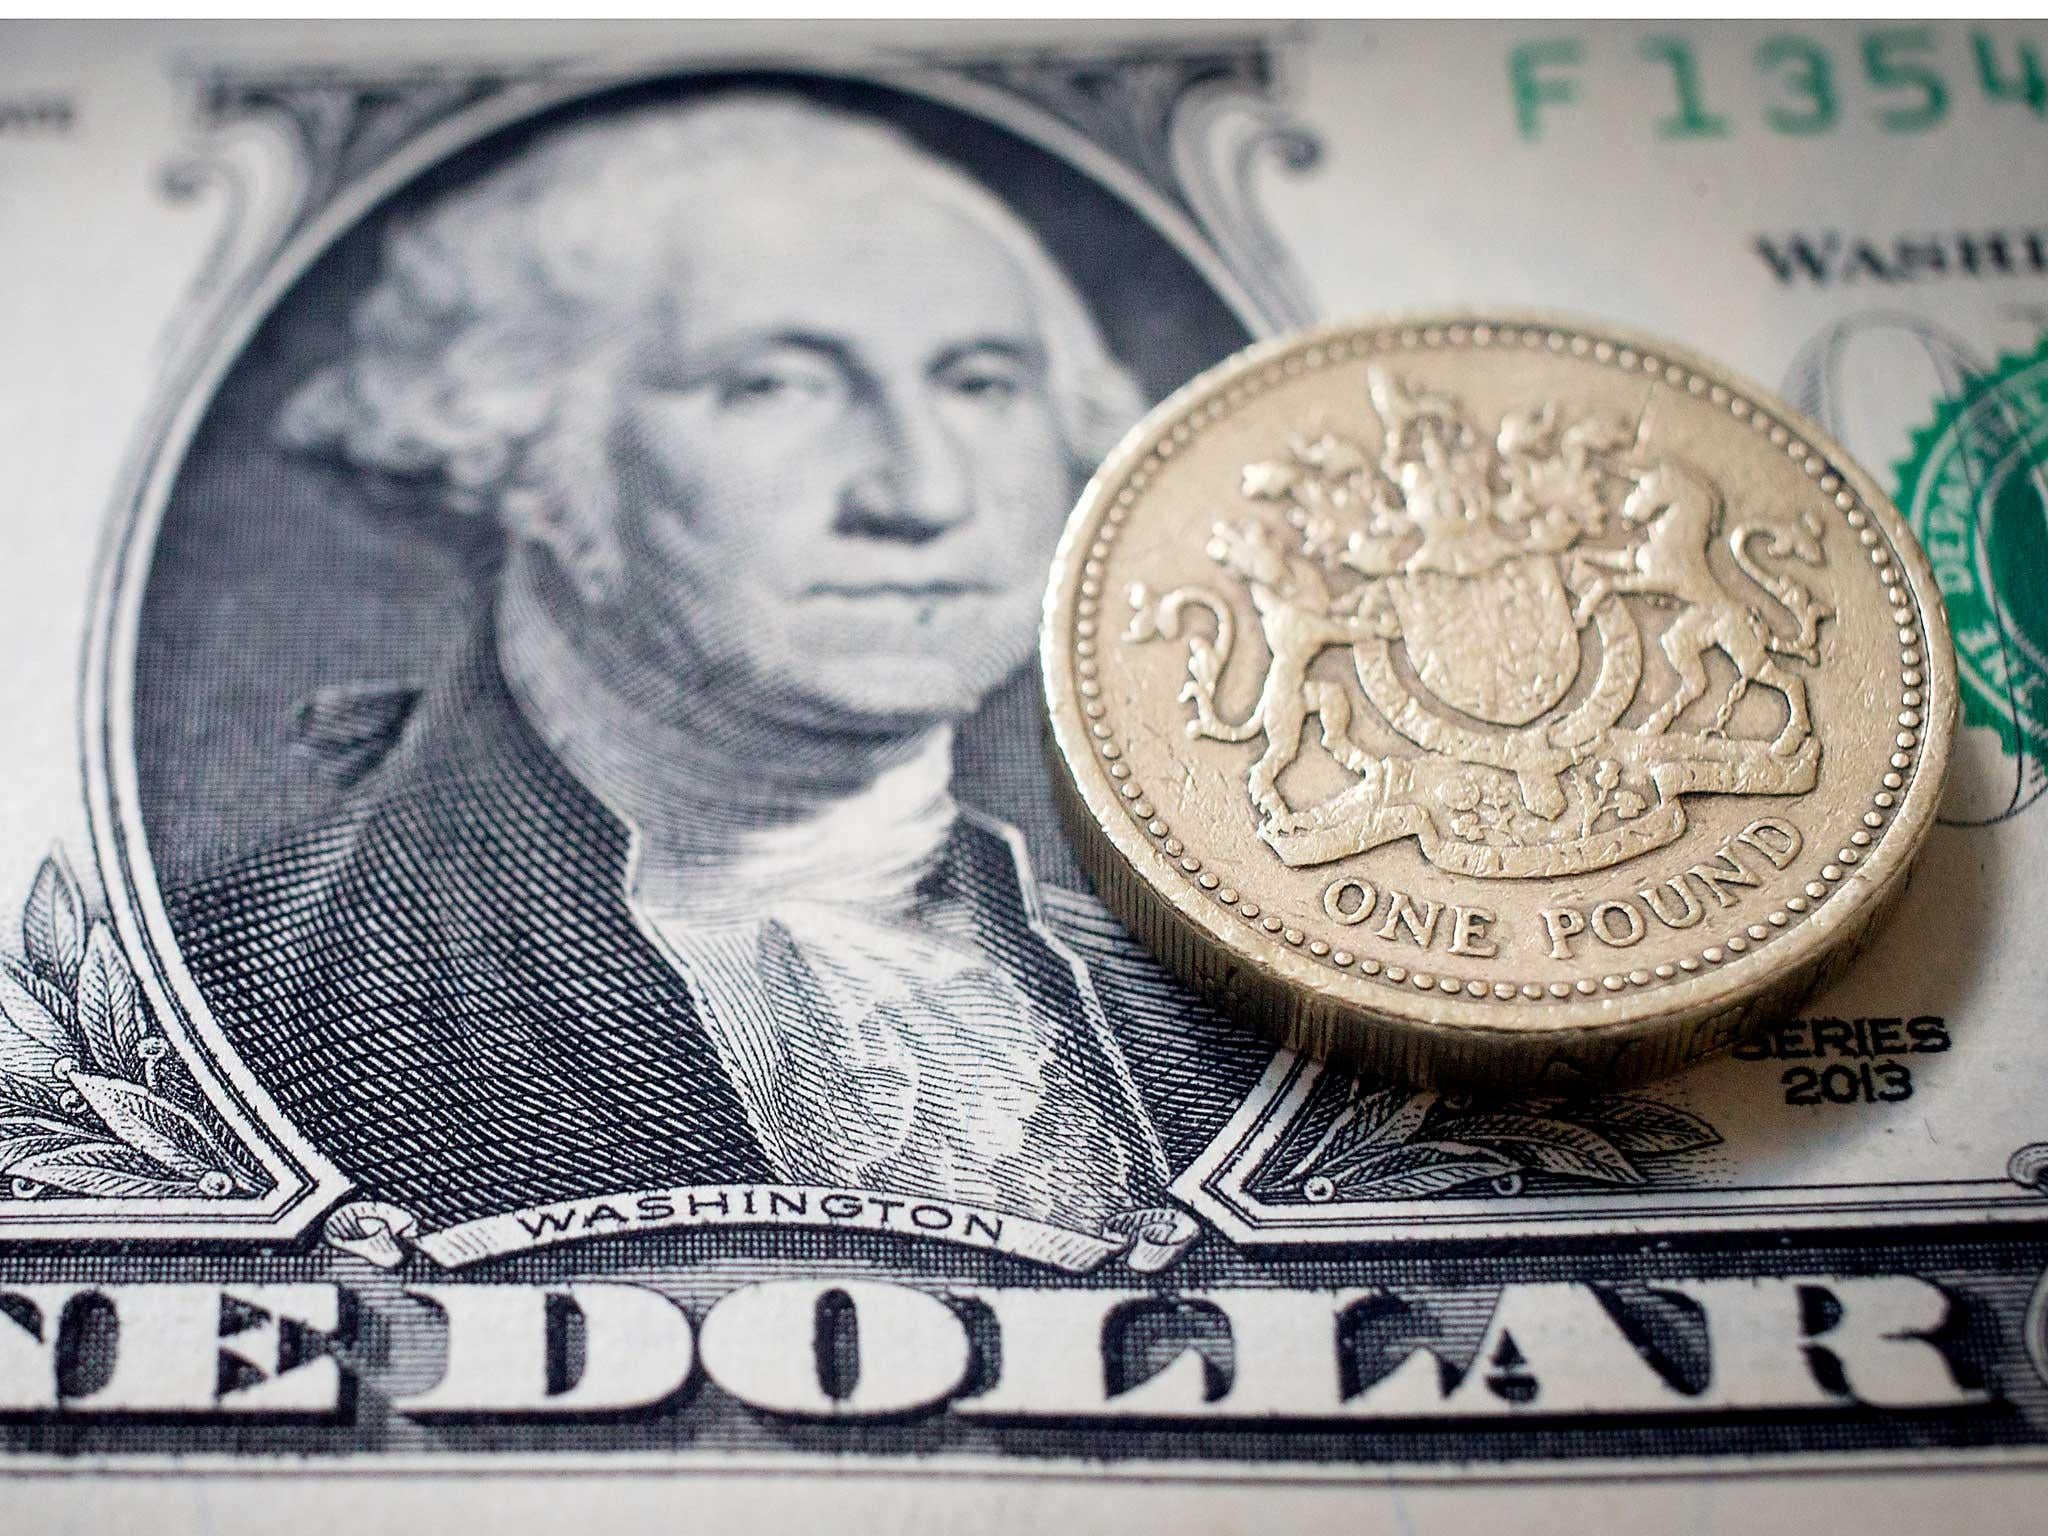 Pound value latest: Sterling hits highest value against the dollar since Brexit vote